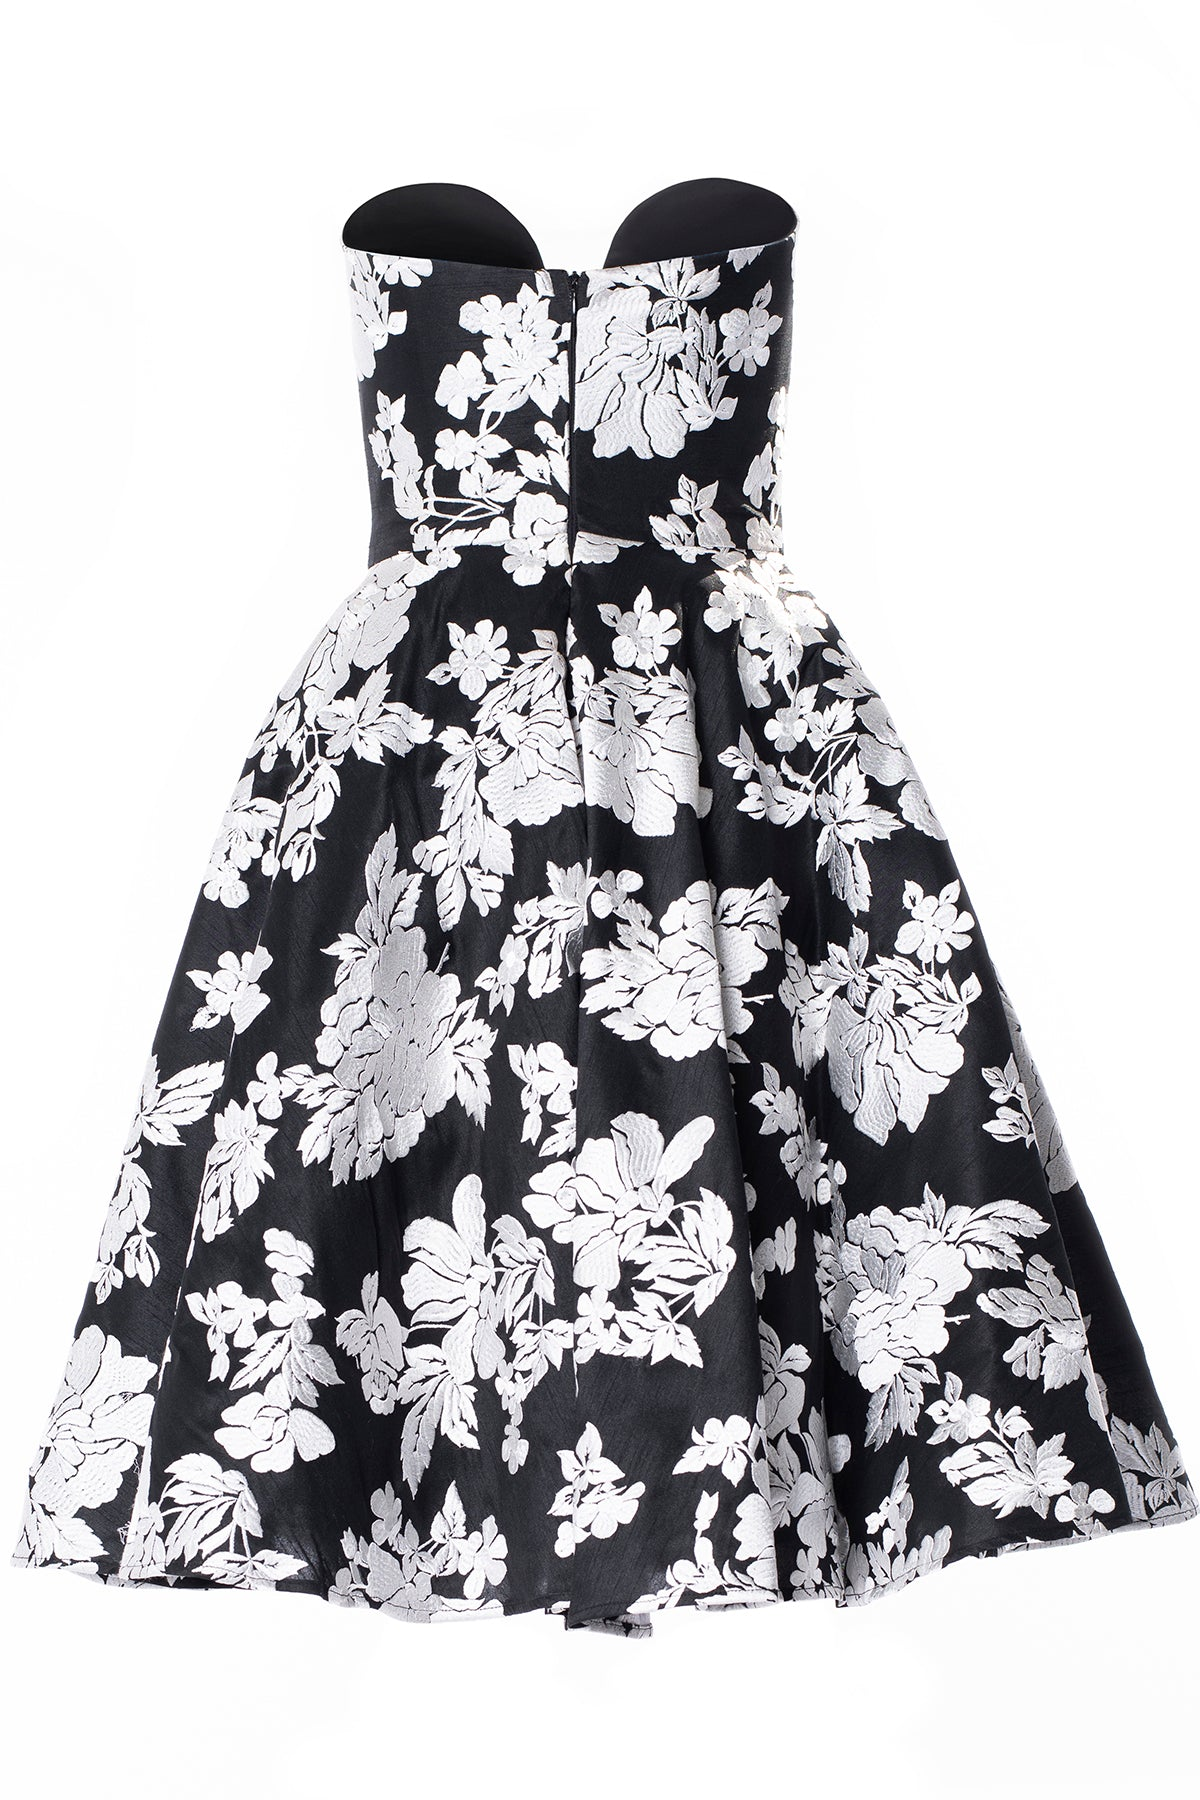 Strapless Dress with Full Circle